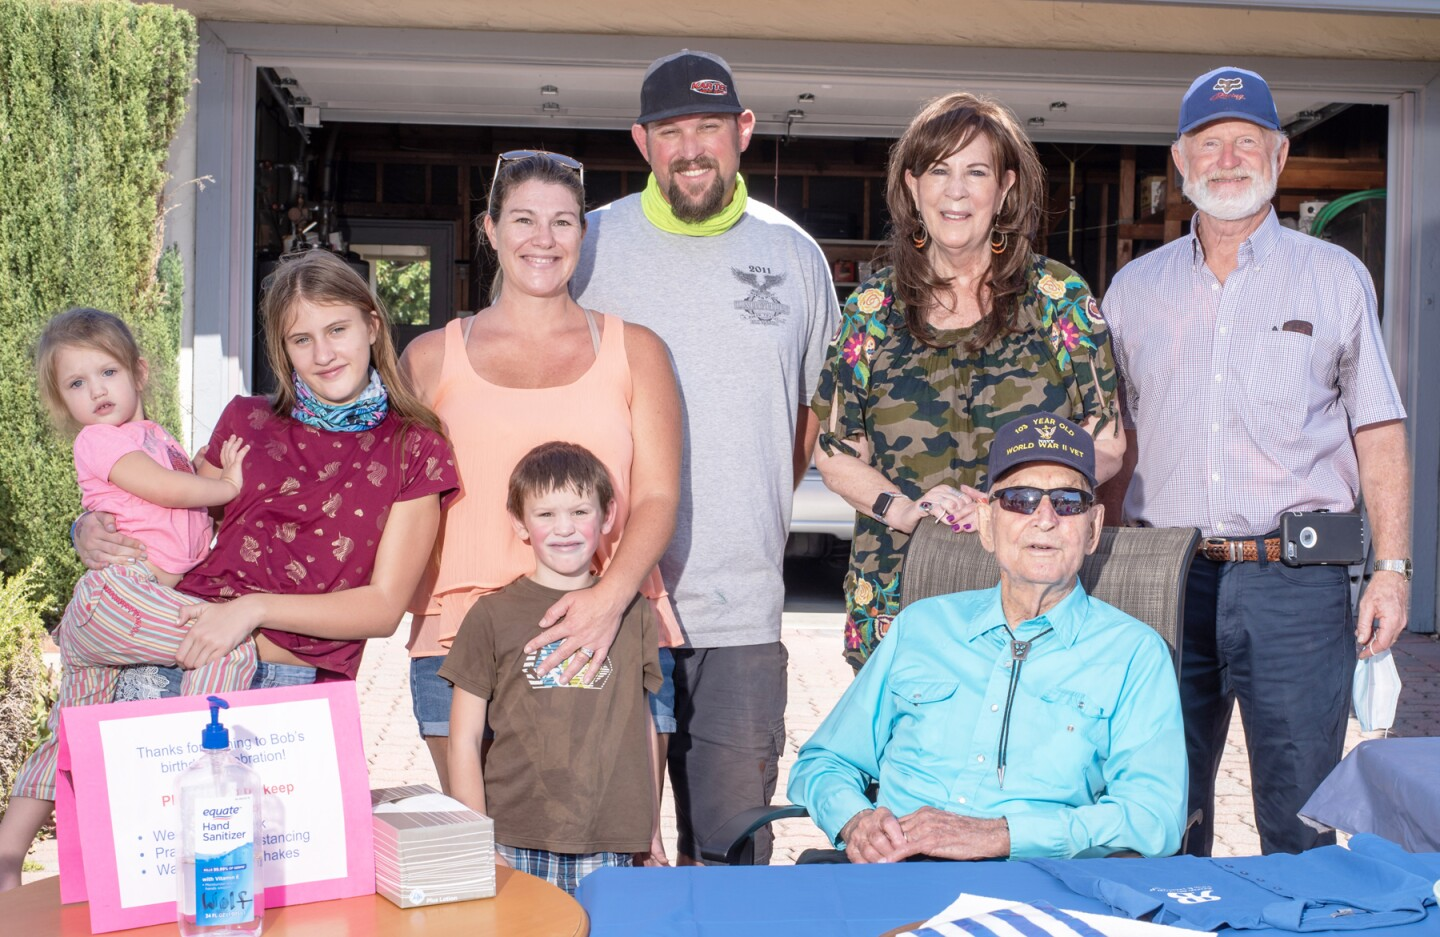 Four generations of the Brown family gathered to celebrate the 103rd birthday of Bob Brown (seated). With him are Raygen, Tayler, Ricky, Ruth Ann and Rick Frisby, and Sally and Nils Holmen.